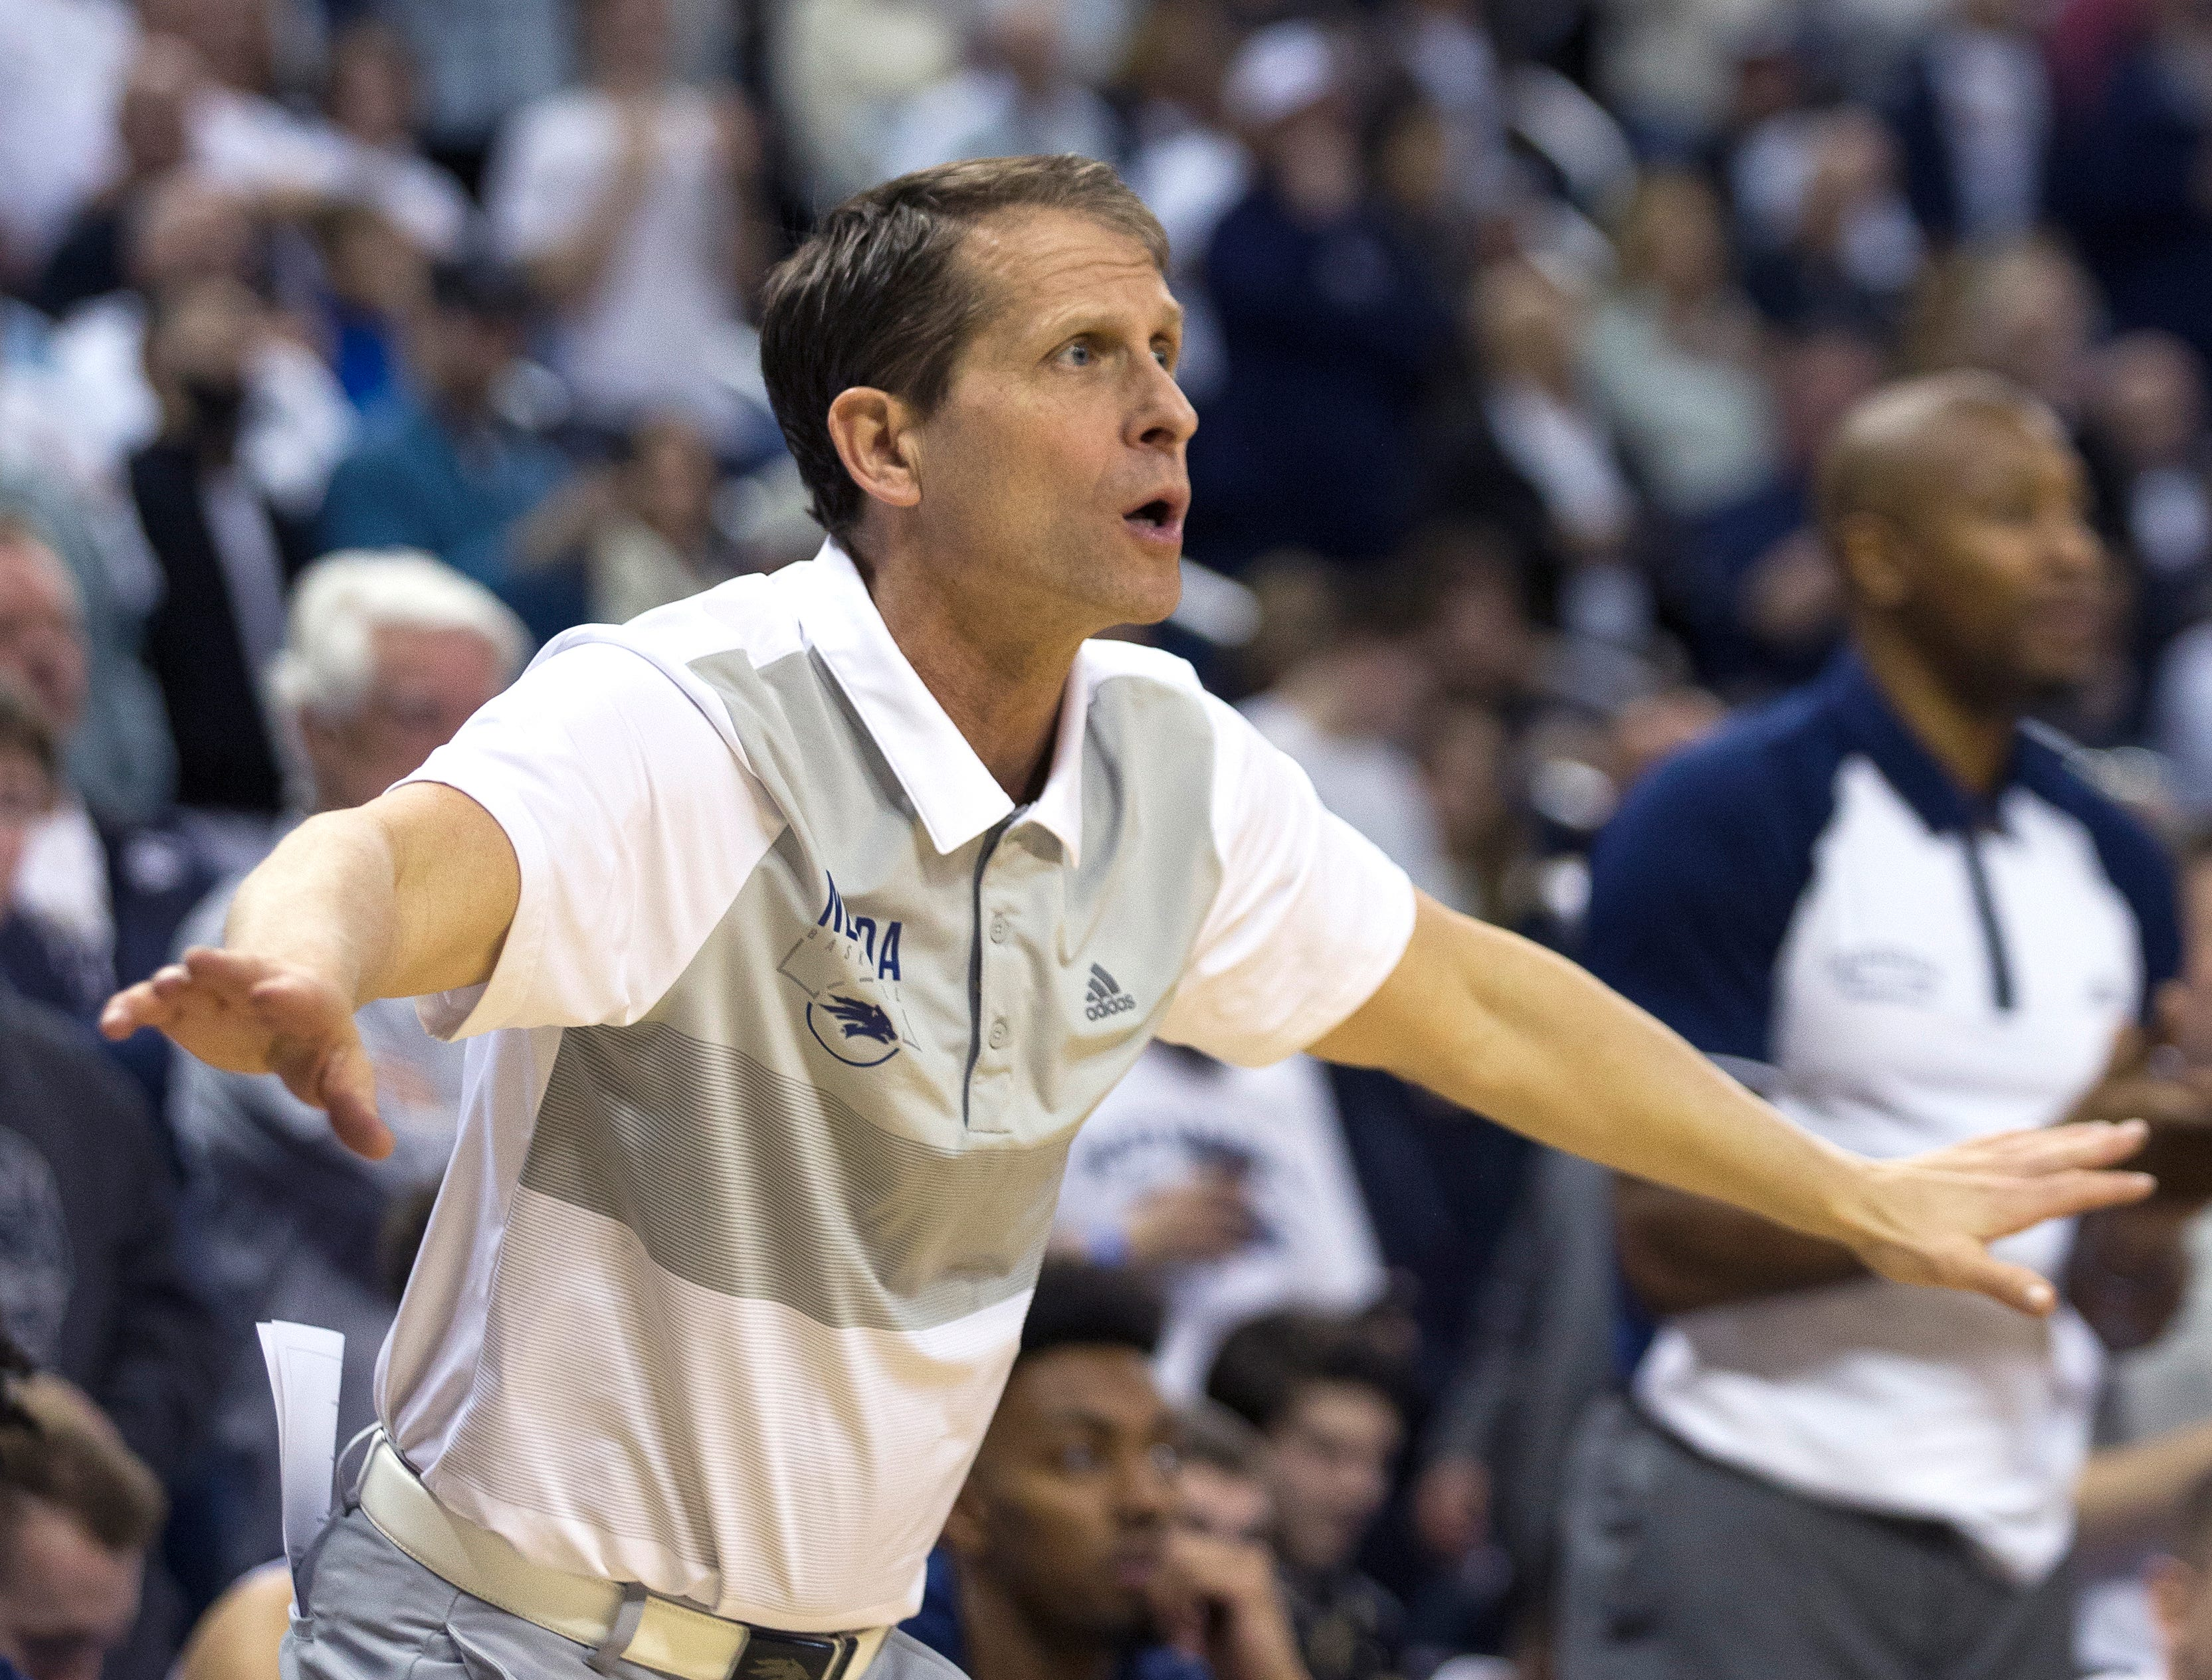 Nevada head coach Eric Musselman works the sidelines against Fresno State in the first half of an NCAA college basketball game in Reno, Nev., Saturday, Feb. 23, 2019. (AP Photo/Tom R. Smedes)